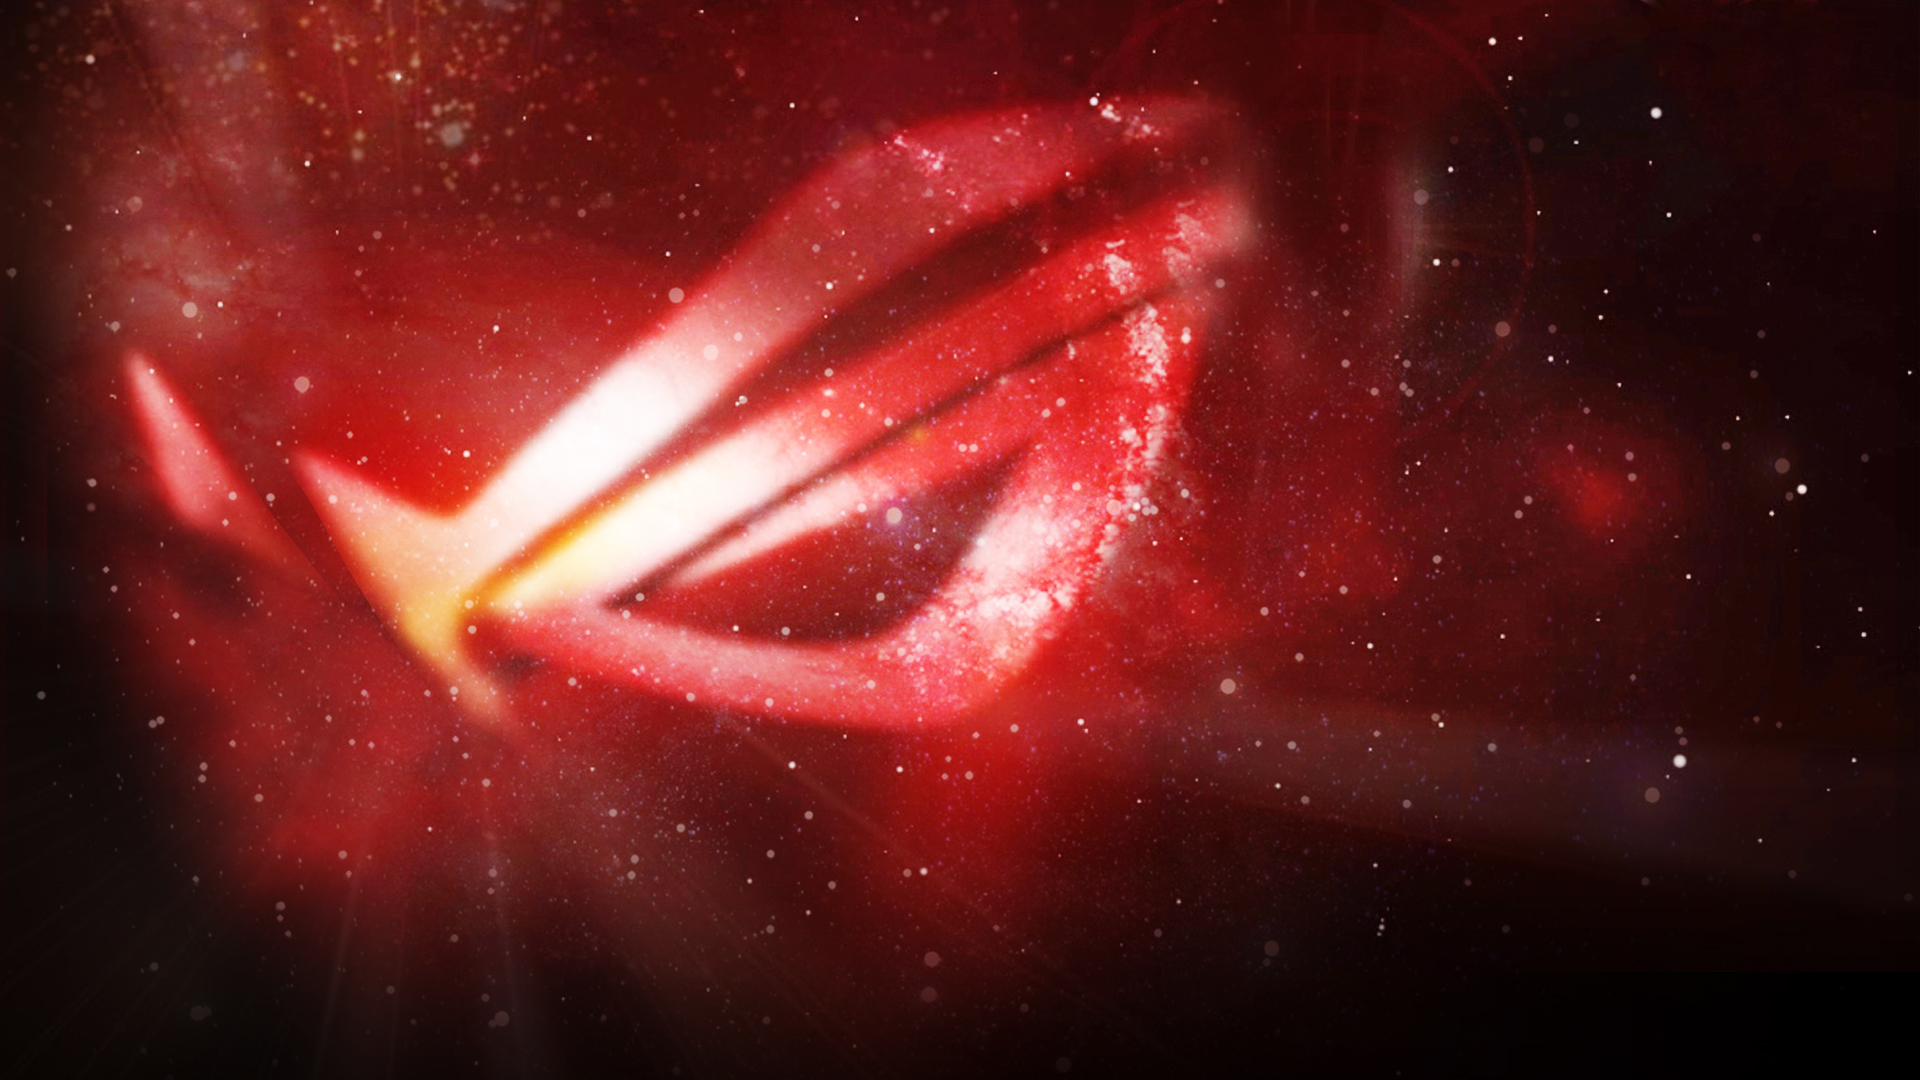 Stars nebulae asus ROG HD Wallpaper